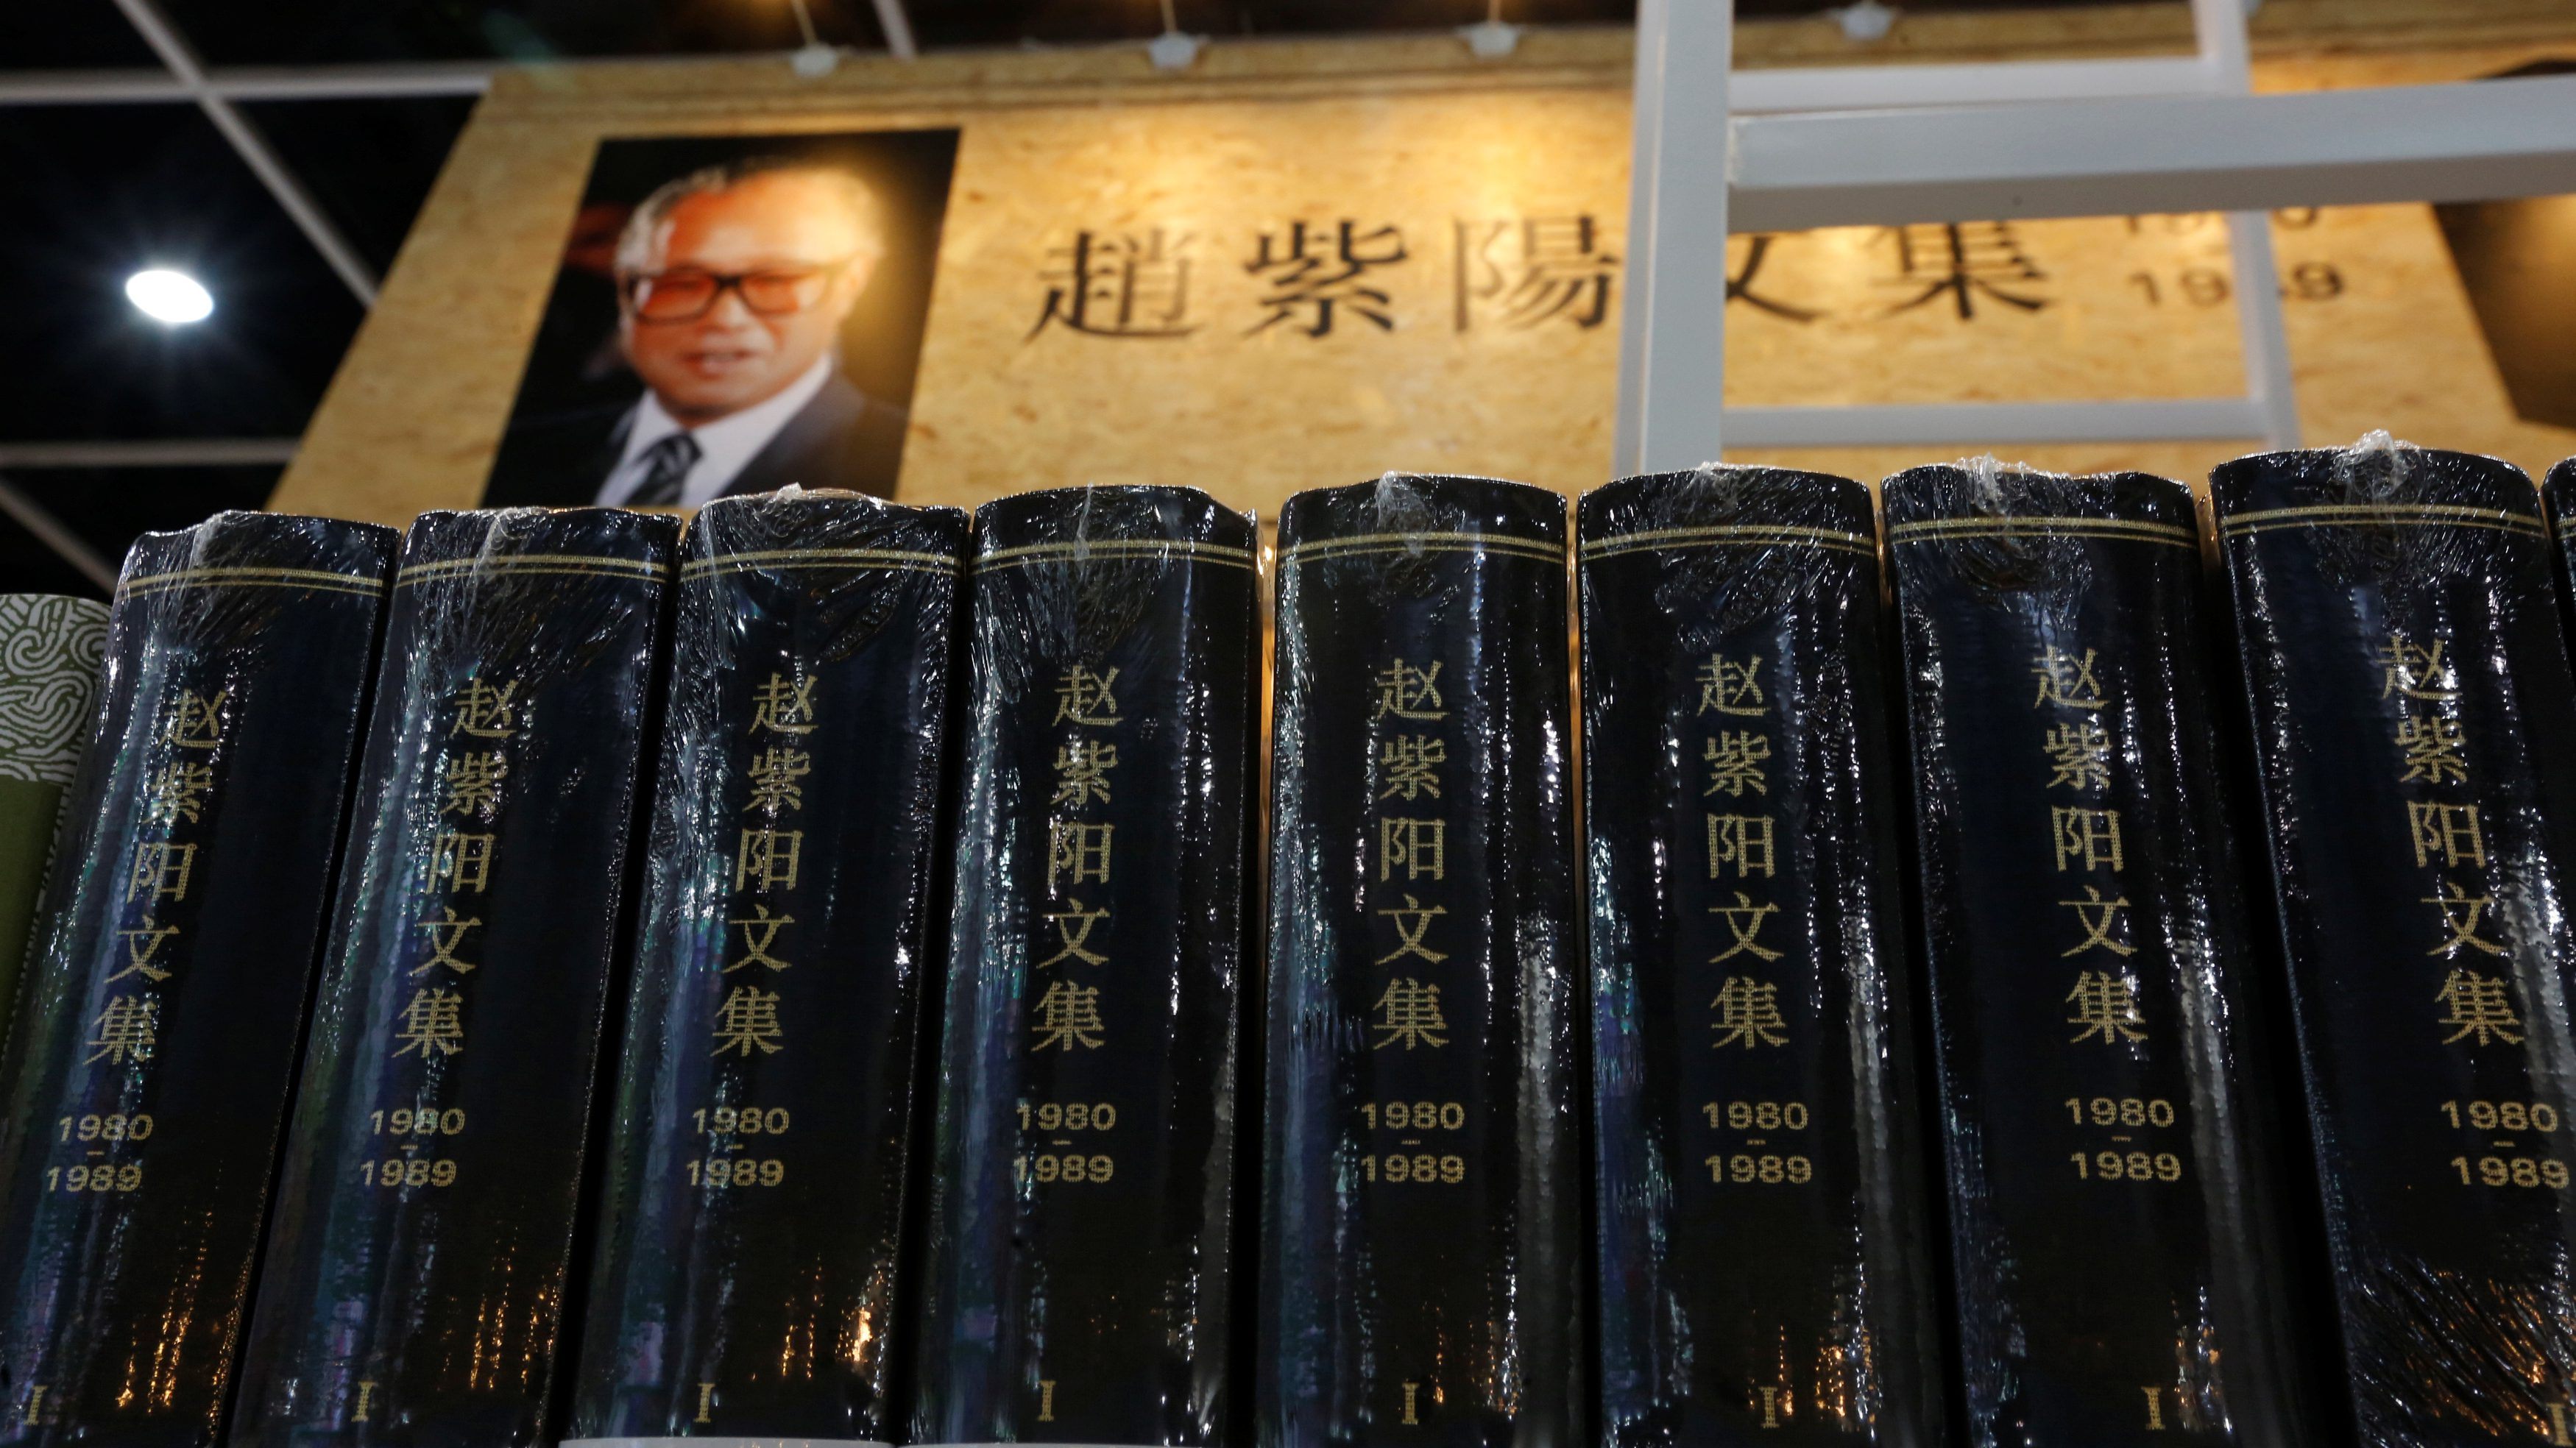 Newly published books by the Chinese University of Hong Kong Press, a collection of documents by the late Chinese Party chief Zhao Ziyang, along with a photo of him, are displayed at the Hong Kong Book Fair in Hong Kong July 19, 2016. To match Exclusive CHINA-ZHAO/DOCUMENTS  REUTERS/Bobby Yip   - RTSINSM